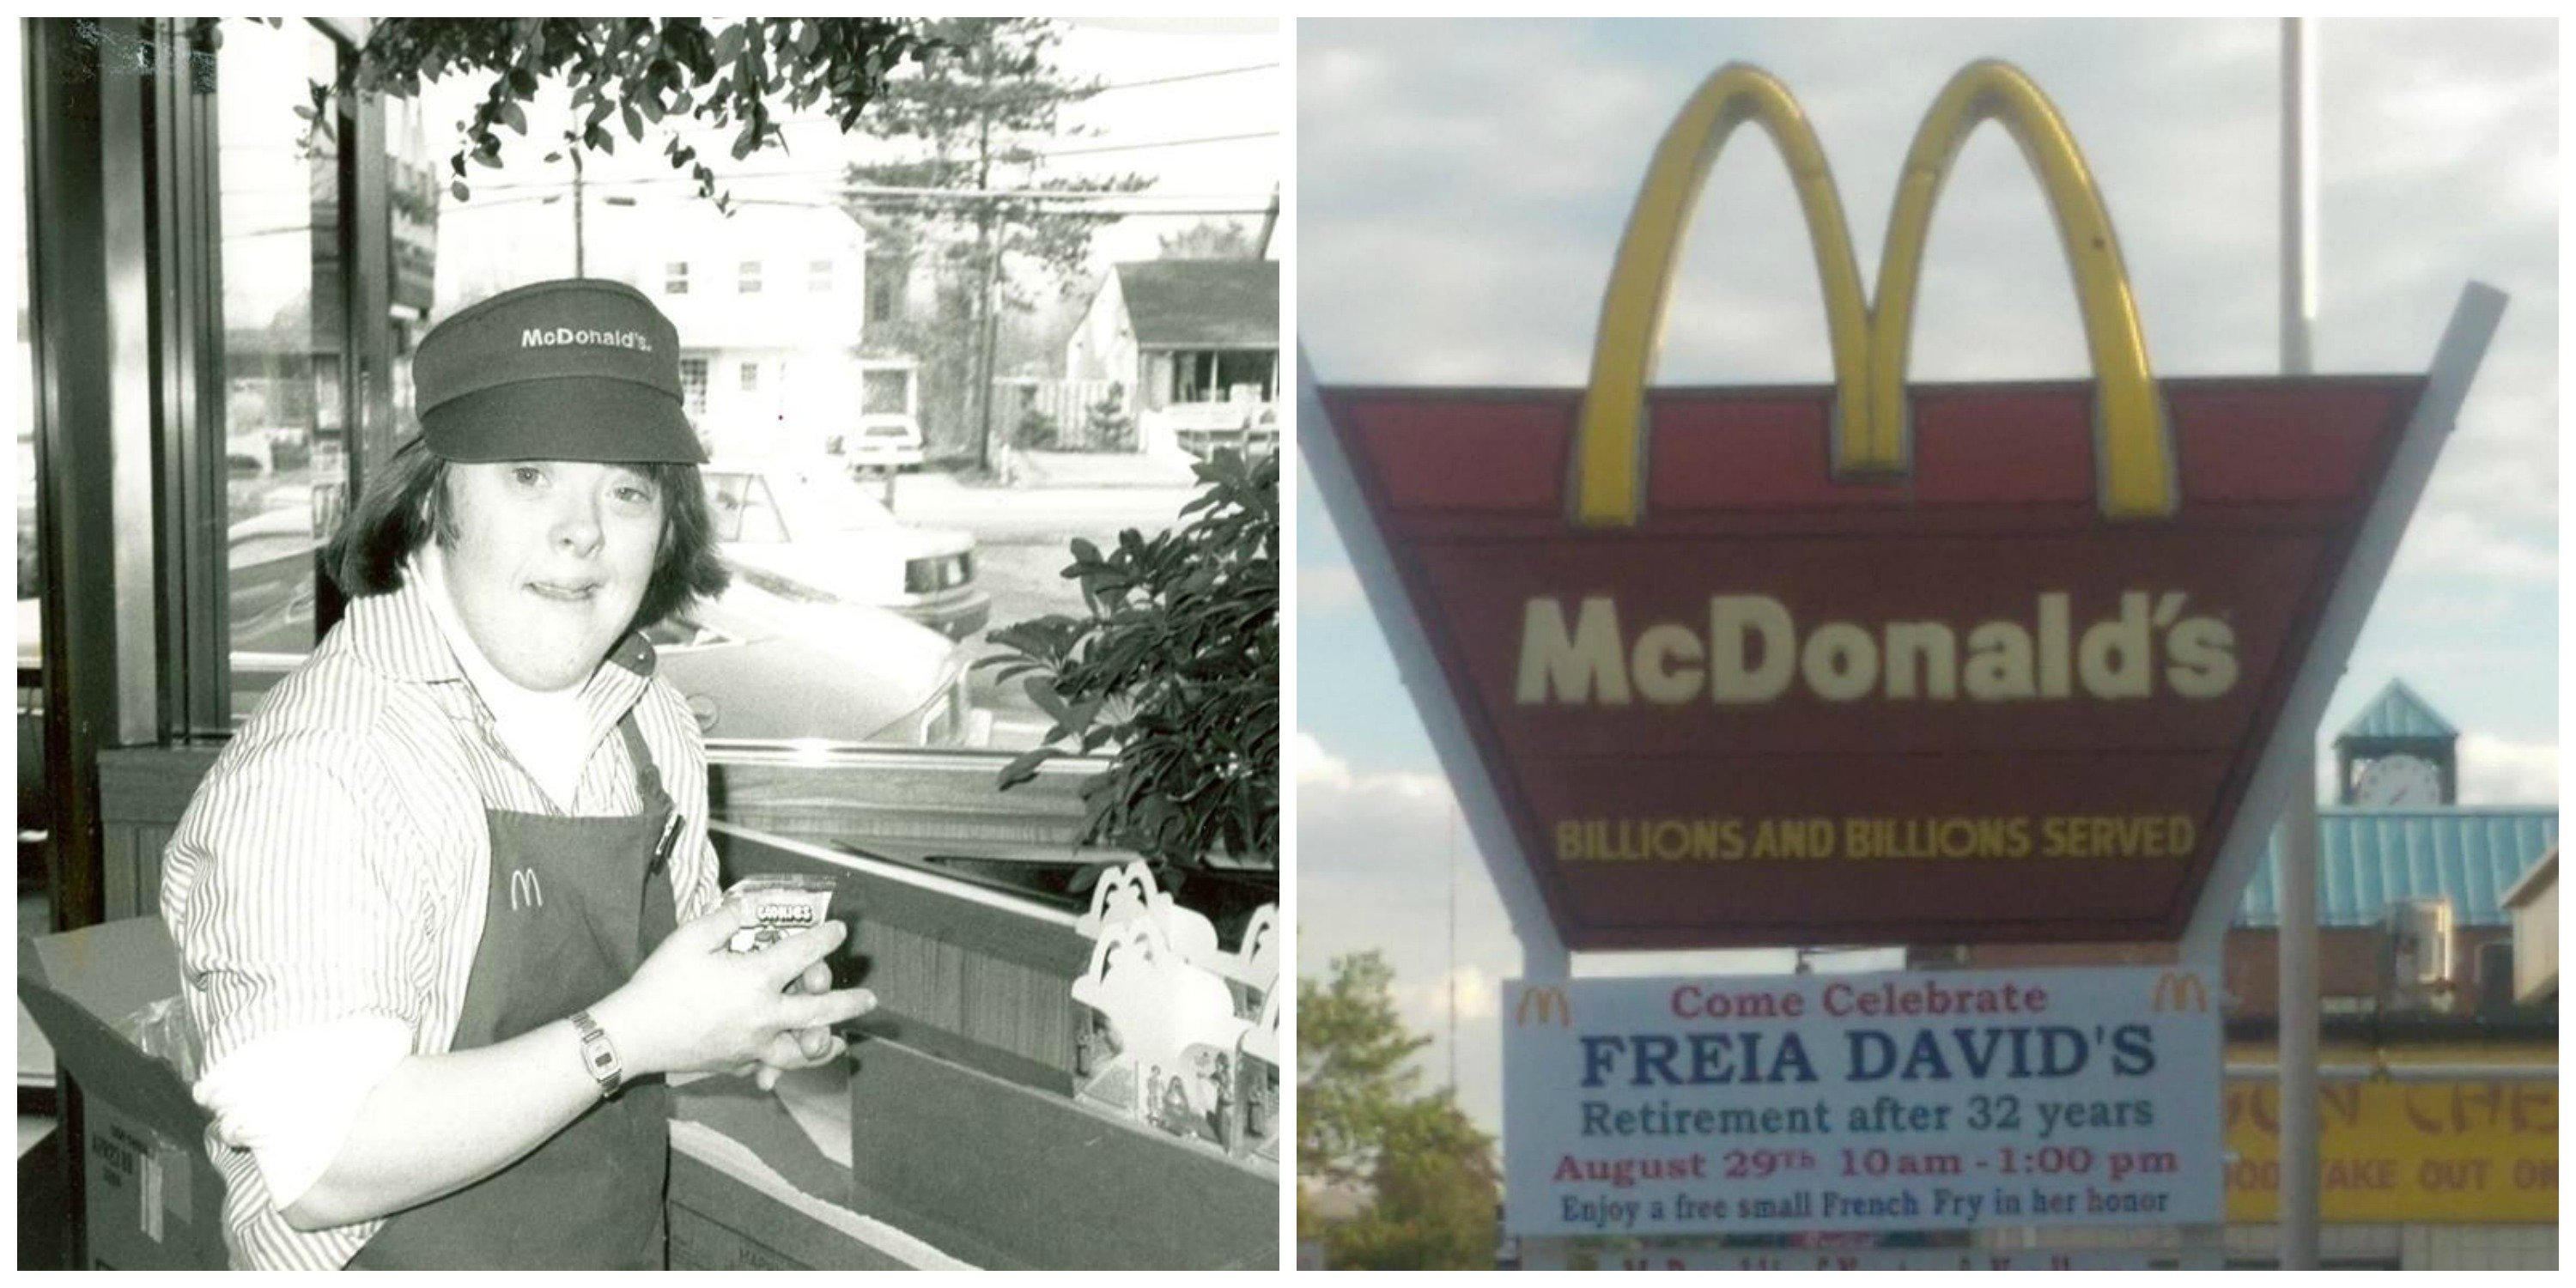 freia thumb.jpg?resize=412,232 - After 32 Years, A Devoted McDonald's Employee Received A Beautiful Send-Off